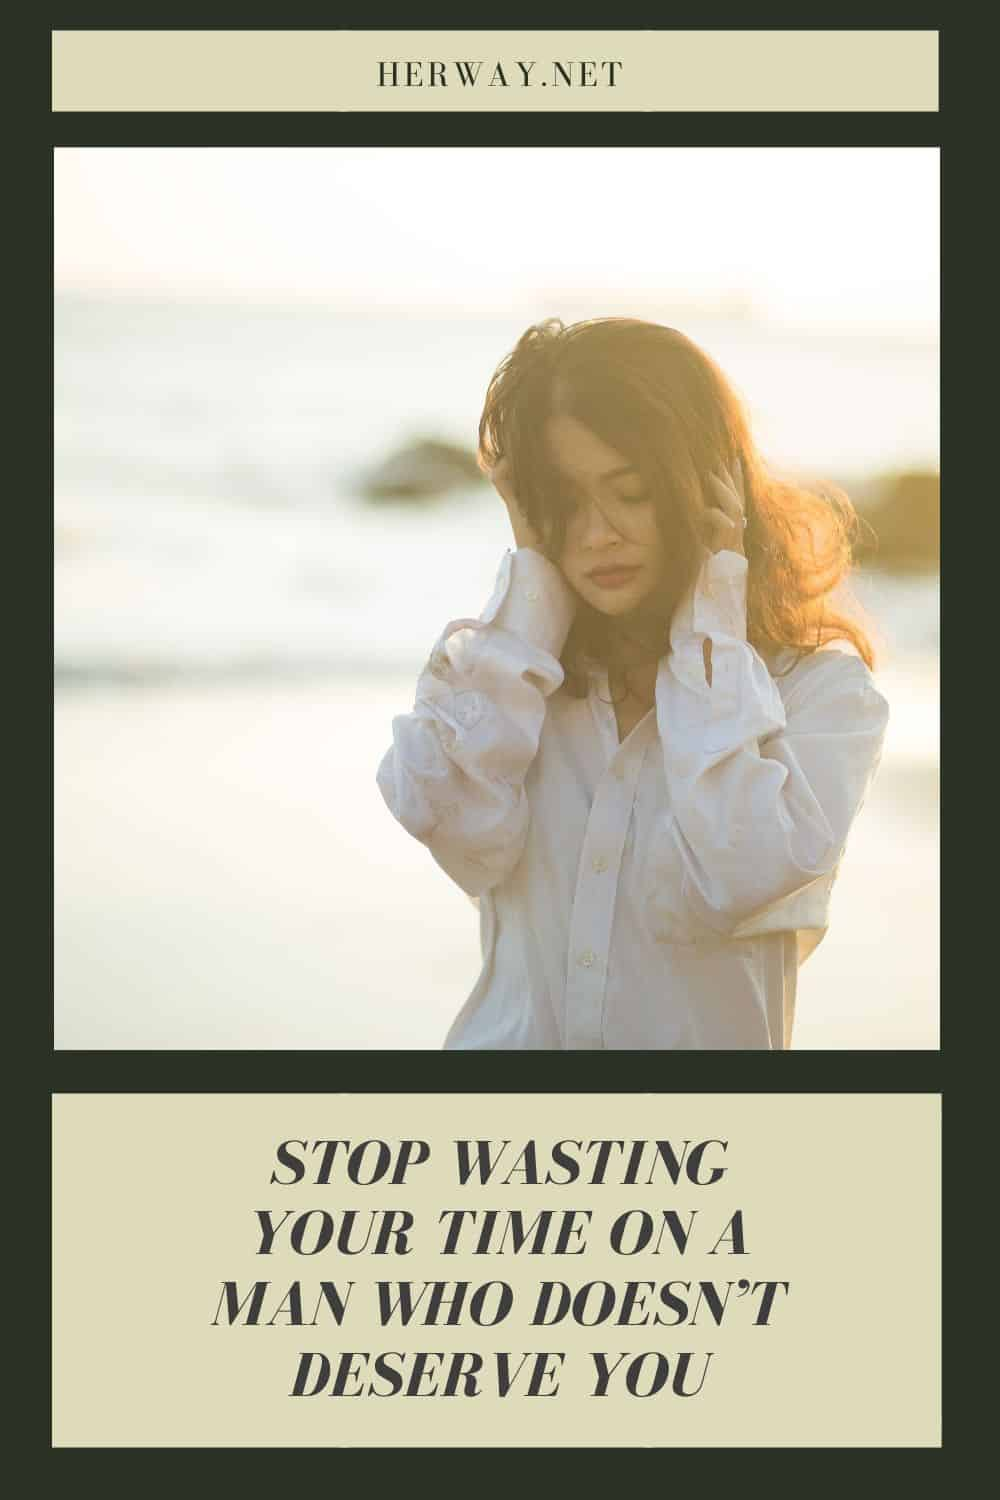 Stop Wasting Your Time On A Man Who Doesn't Deserve You